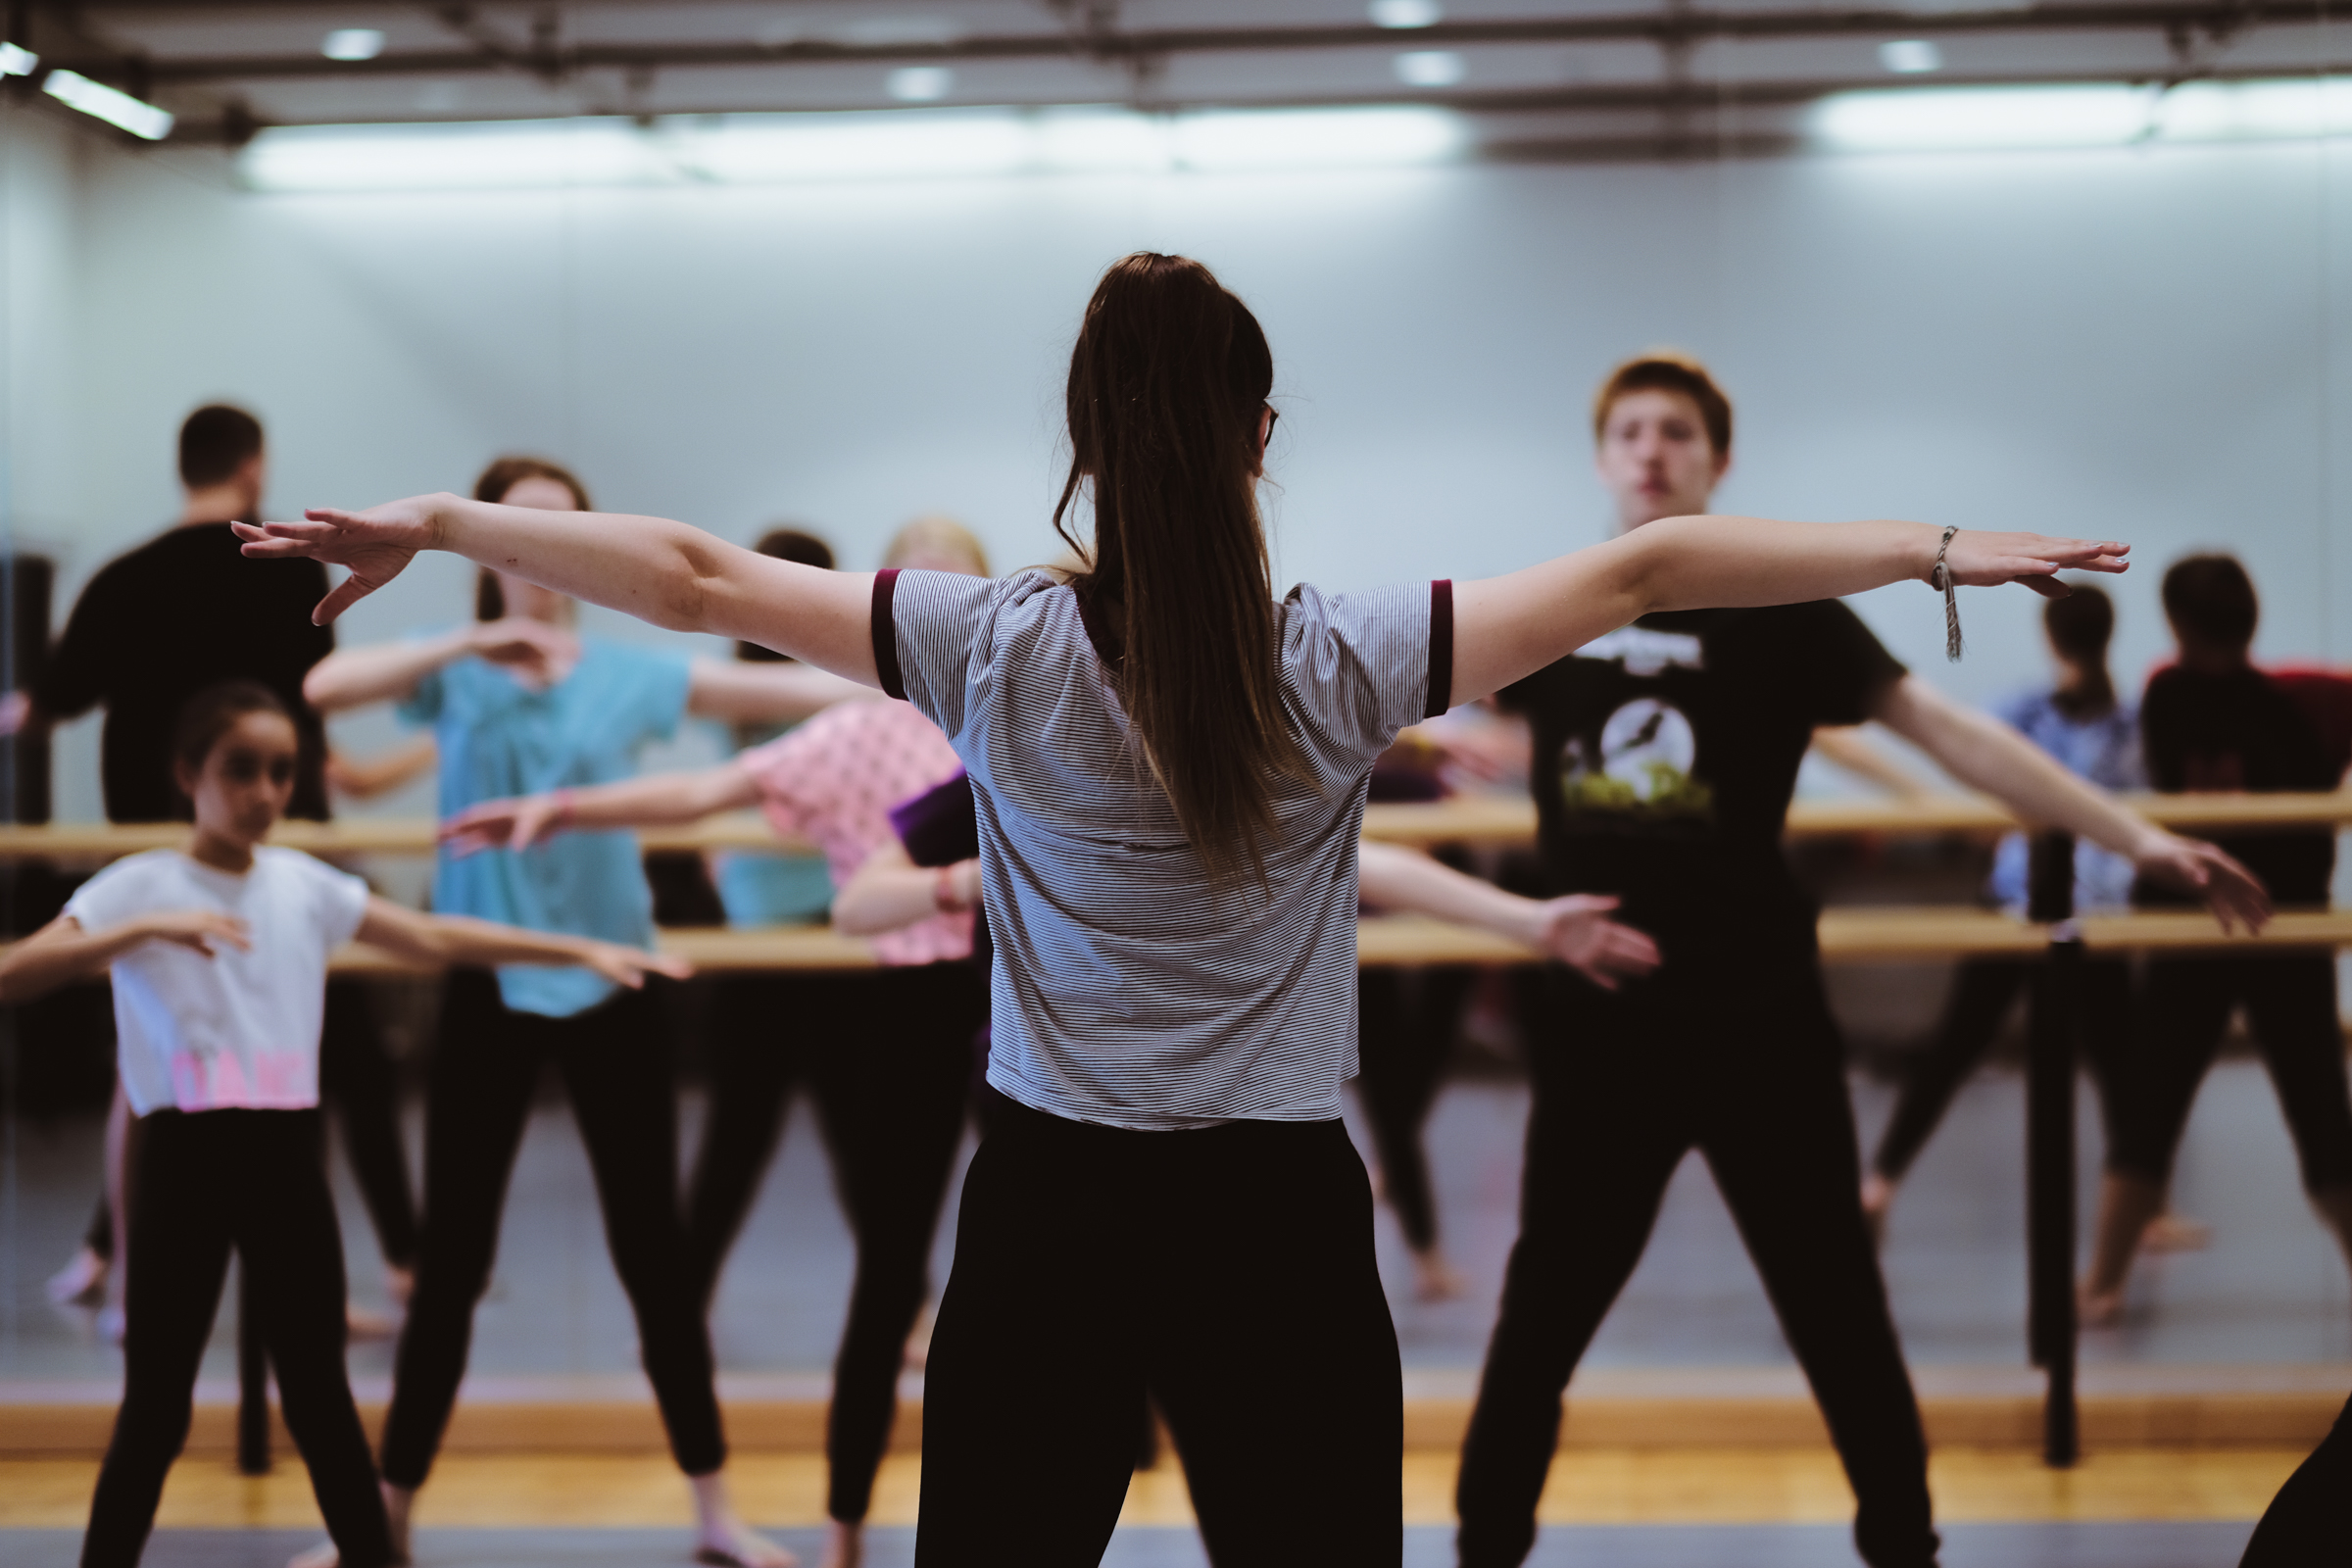 Dancers in rehearsal with arms stretched out